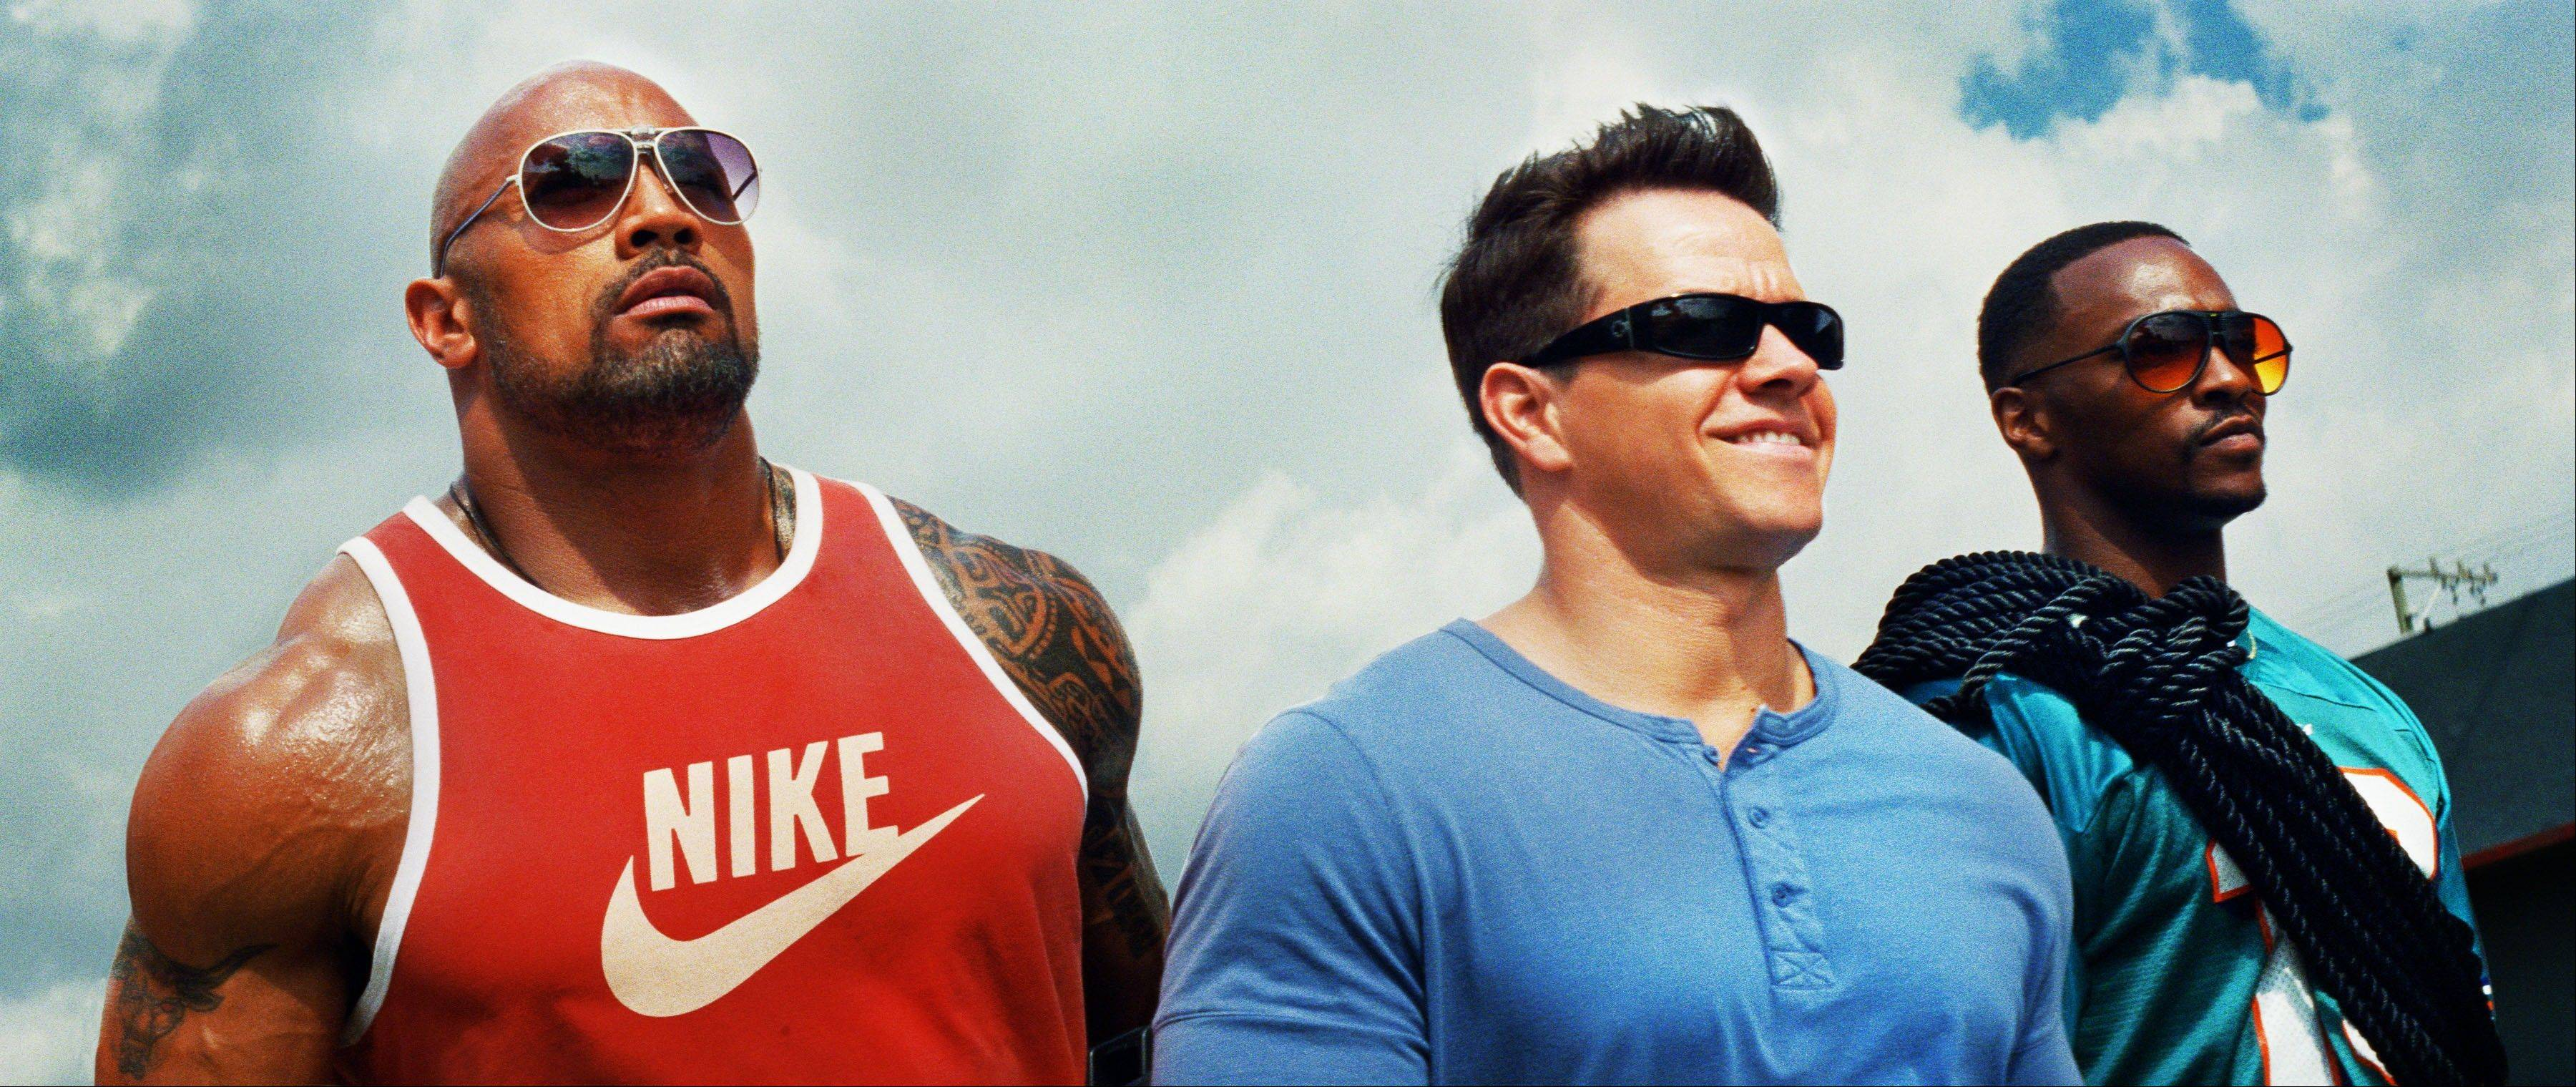 Dwayne Johnson, left, who plays Paul Doyle in the new film �Pain and Gain,� is home after hernia surgery.